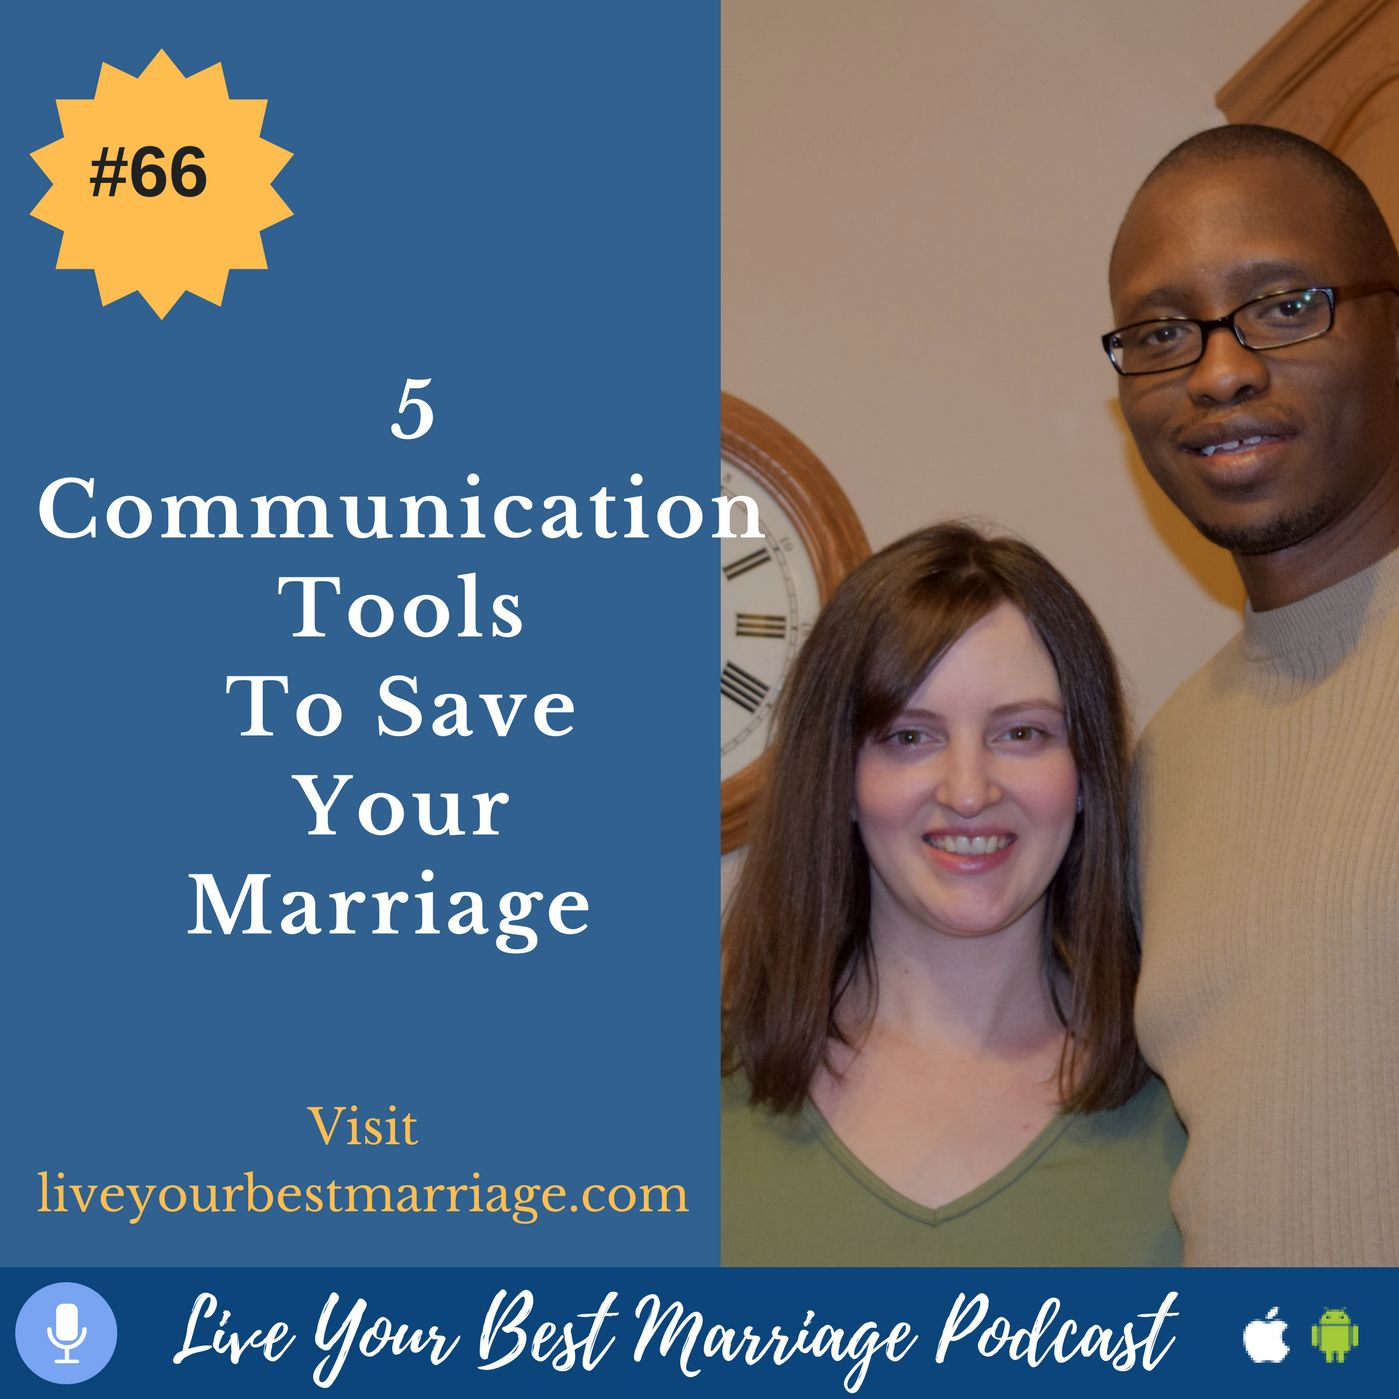 episode-66-5-communication-tools-to-save-your-marriage-audio_thumbnail.png